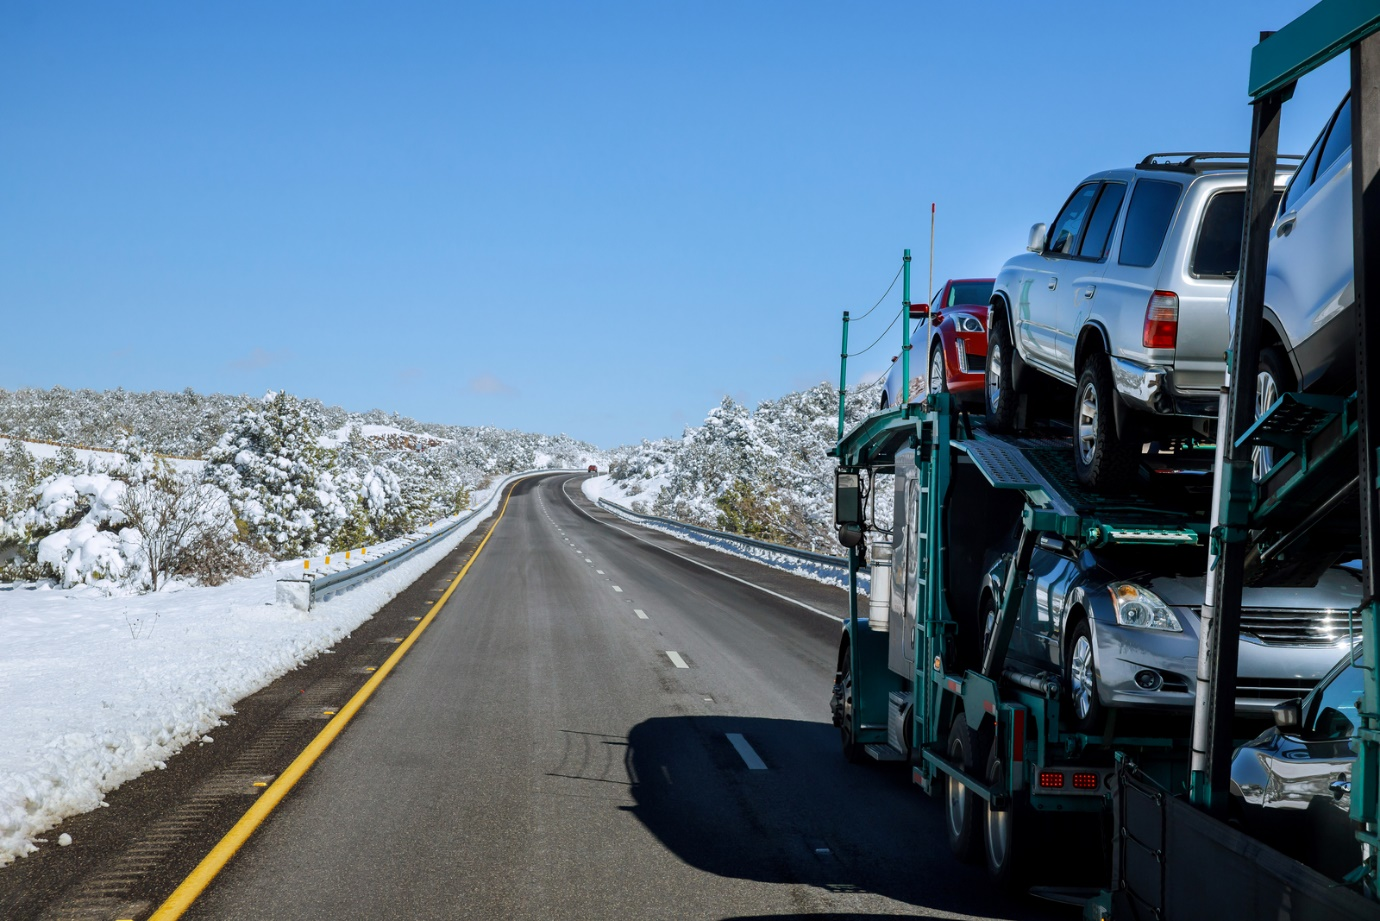 An auto carrier trailer driving on the road.